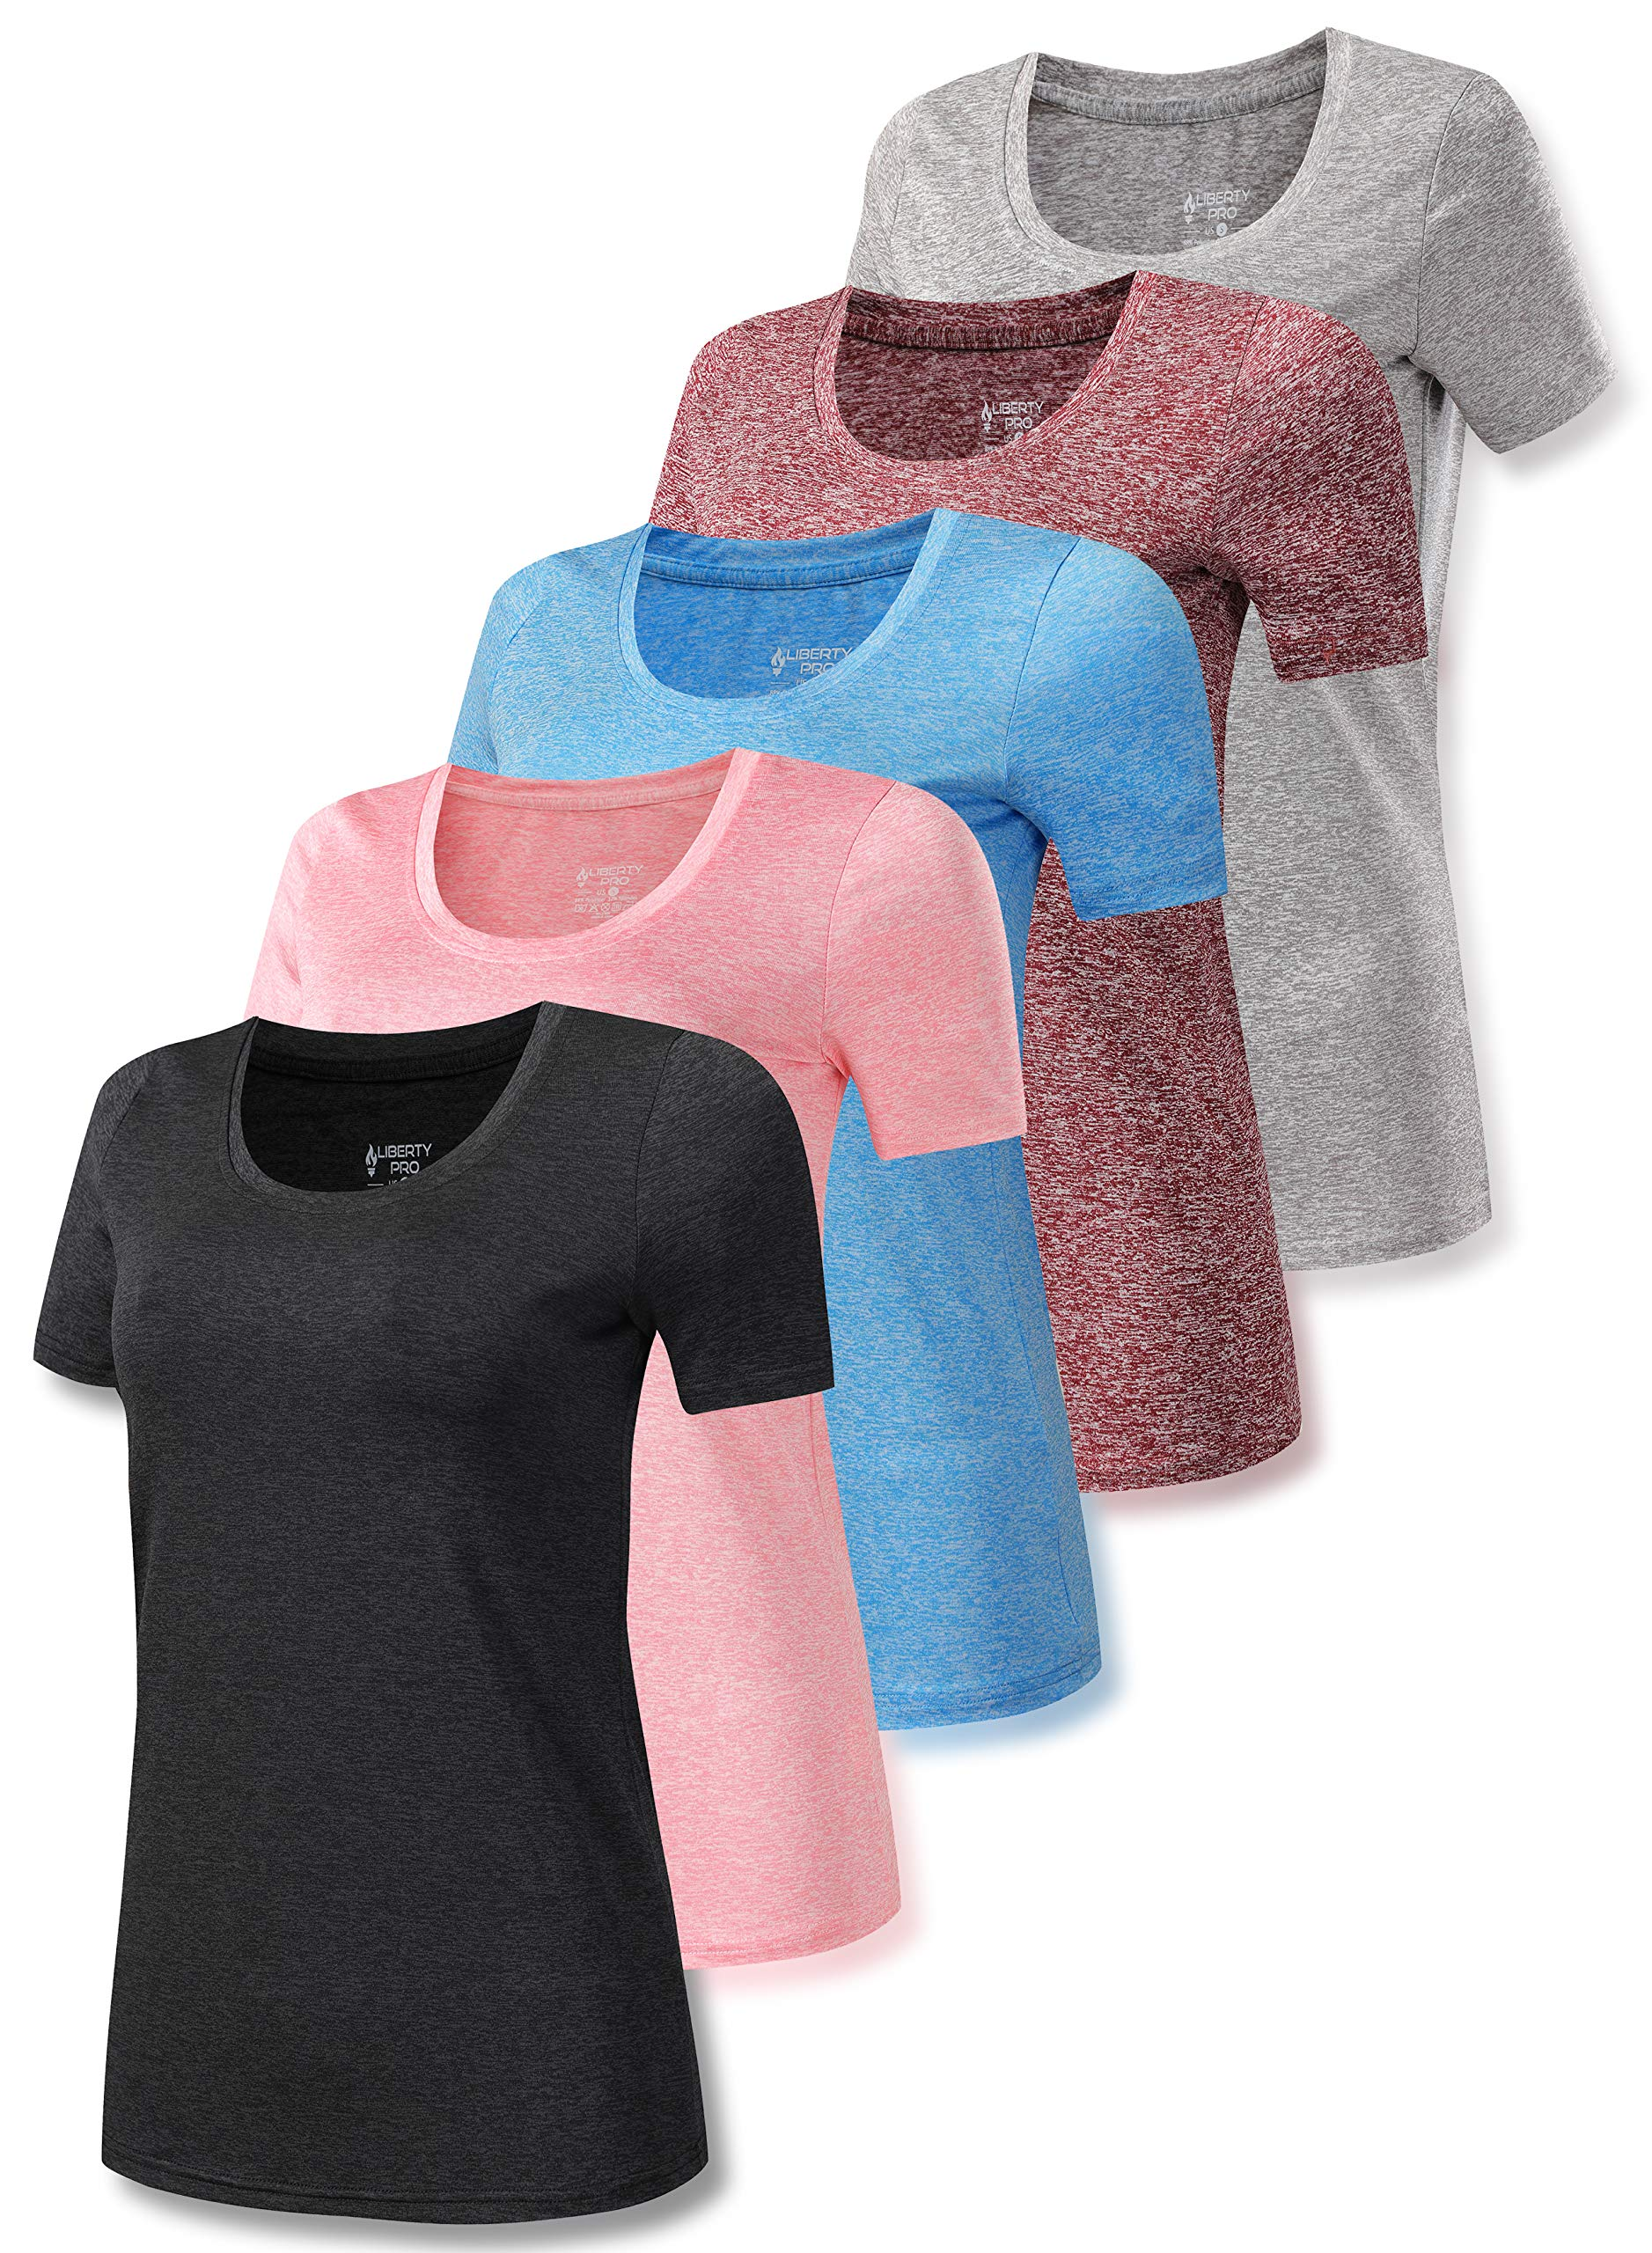 Set of 5 Women's Heathered Active Scoop Neck T Shirts, Short Sleeve Workout Tops for Gym and Yoga